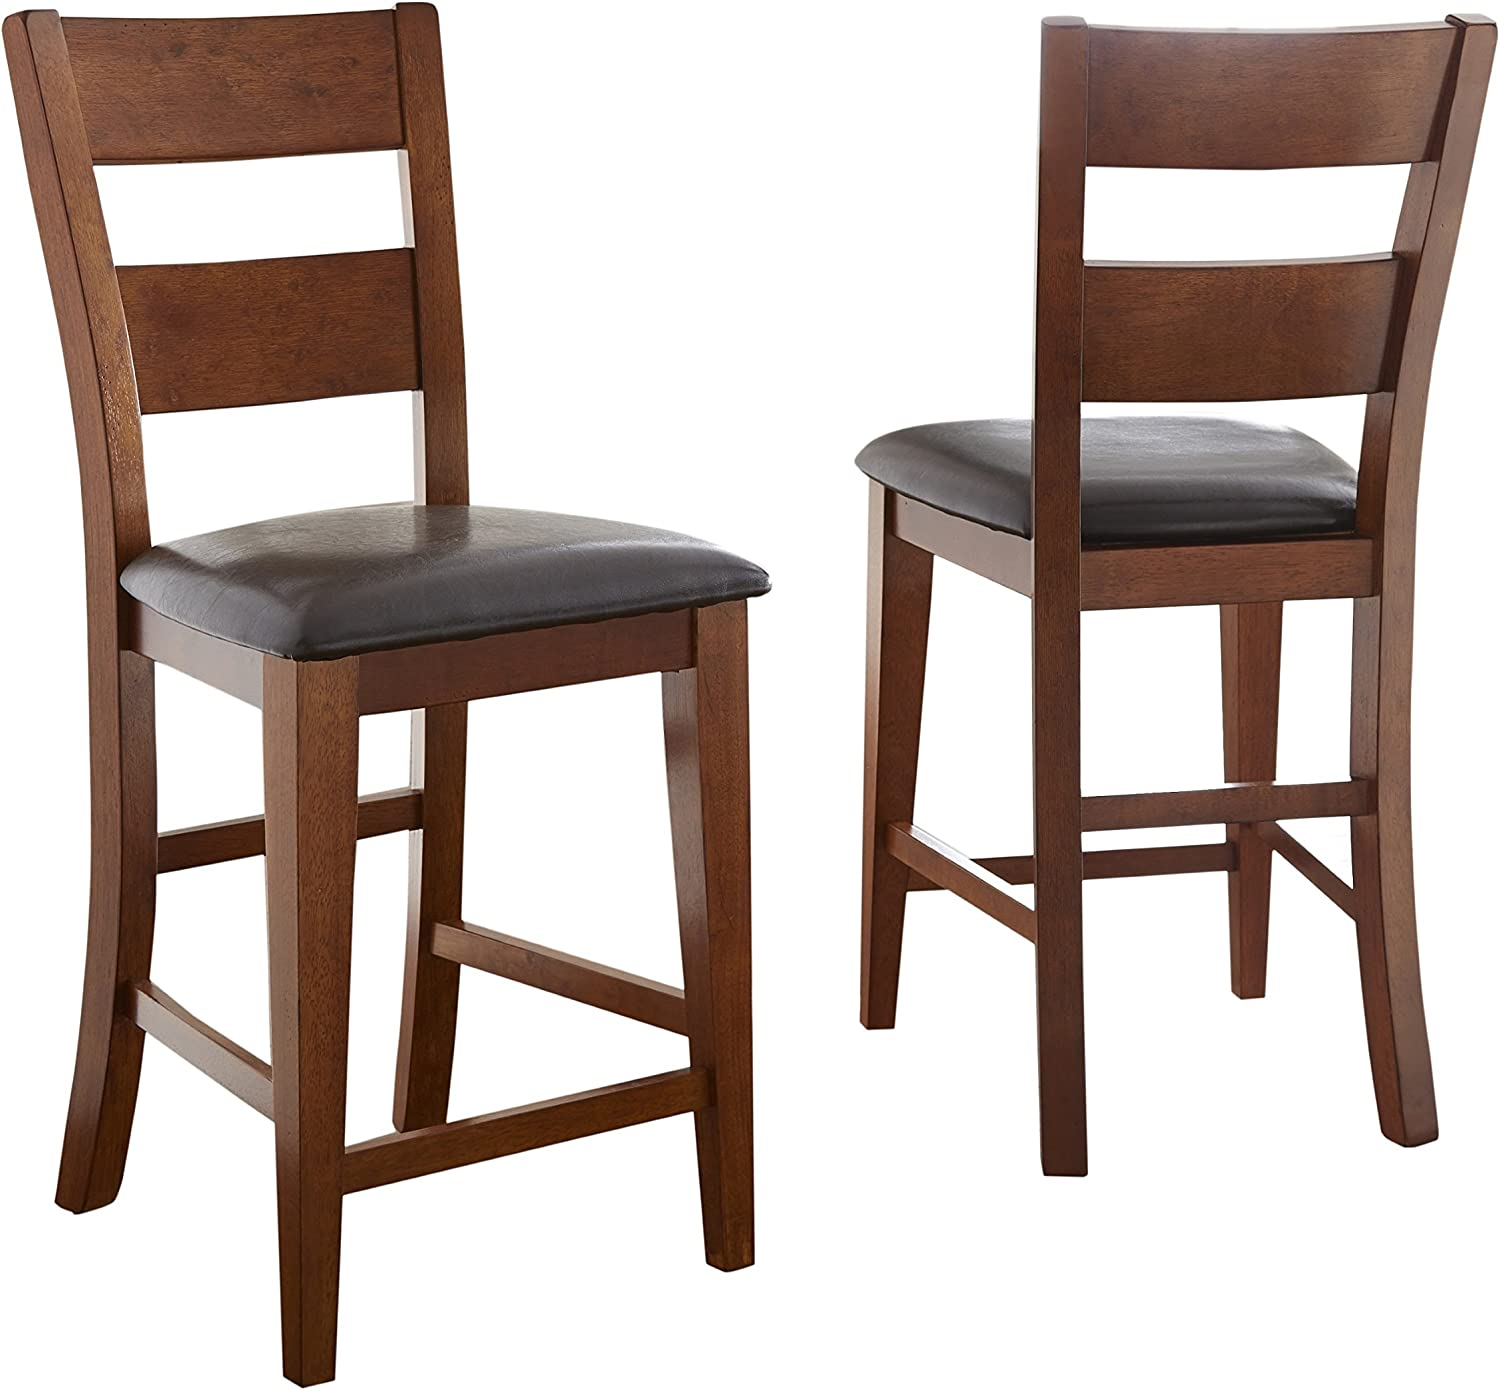 Steve Silver Company Mango Counter Chair, Set of 2